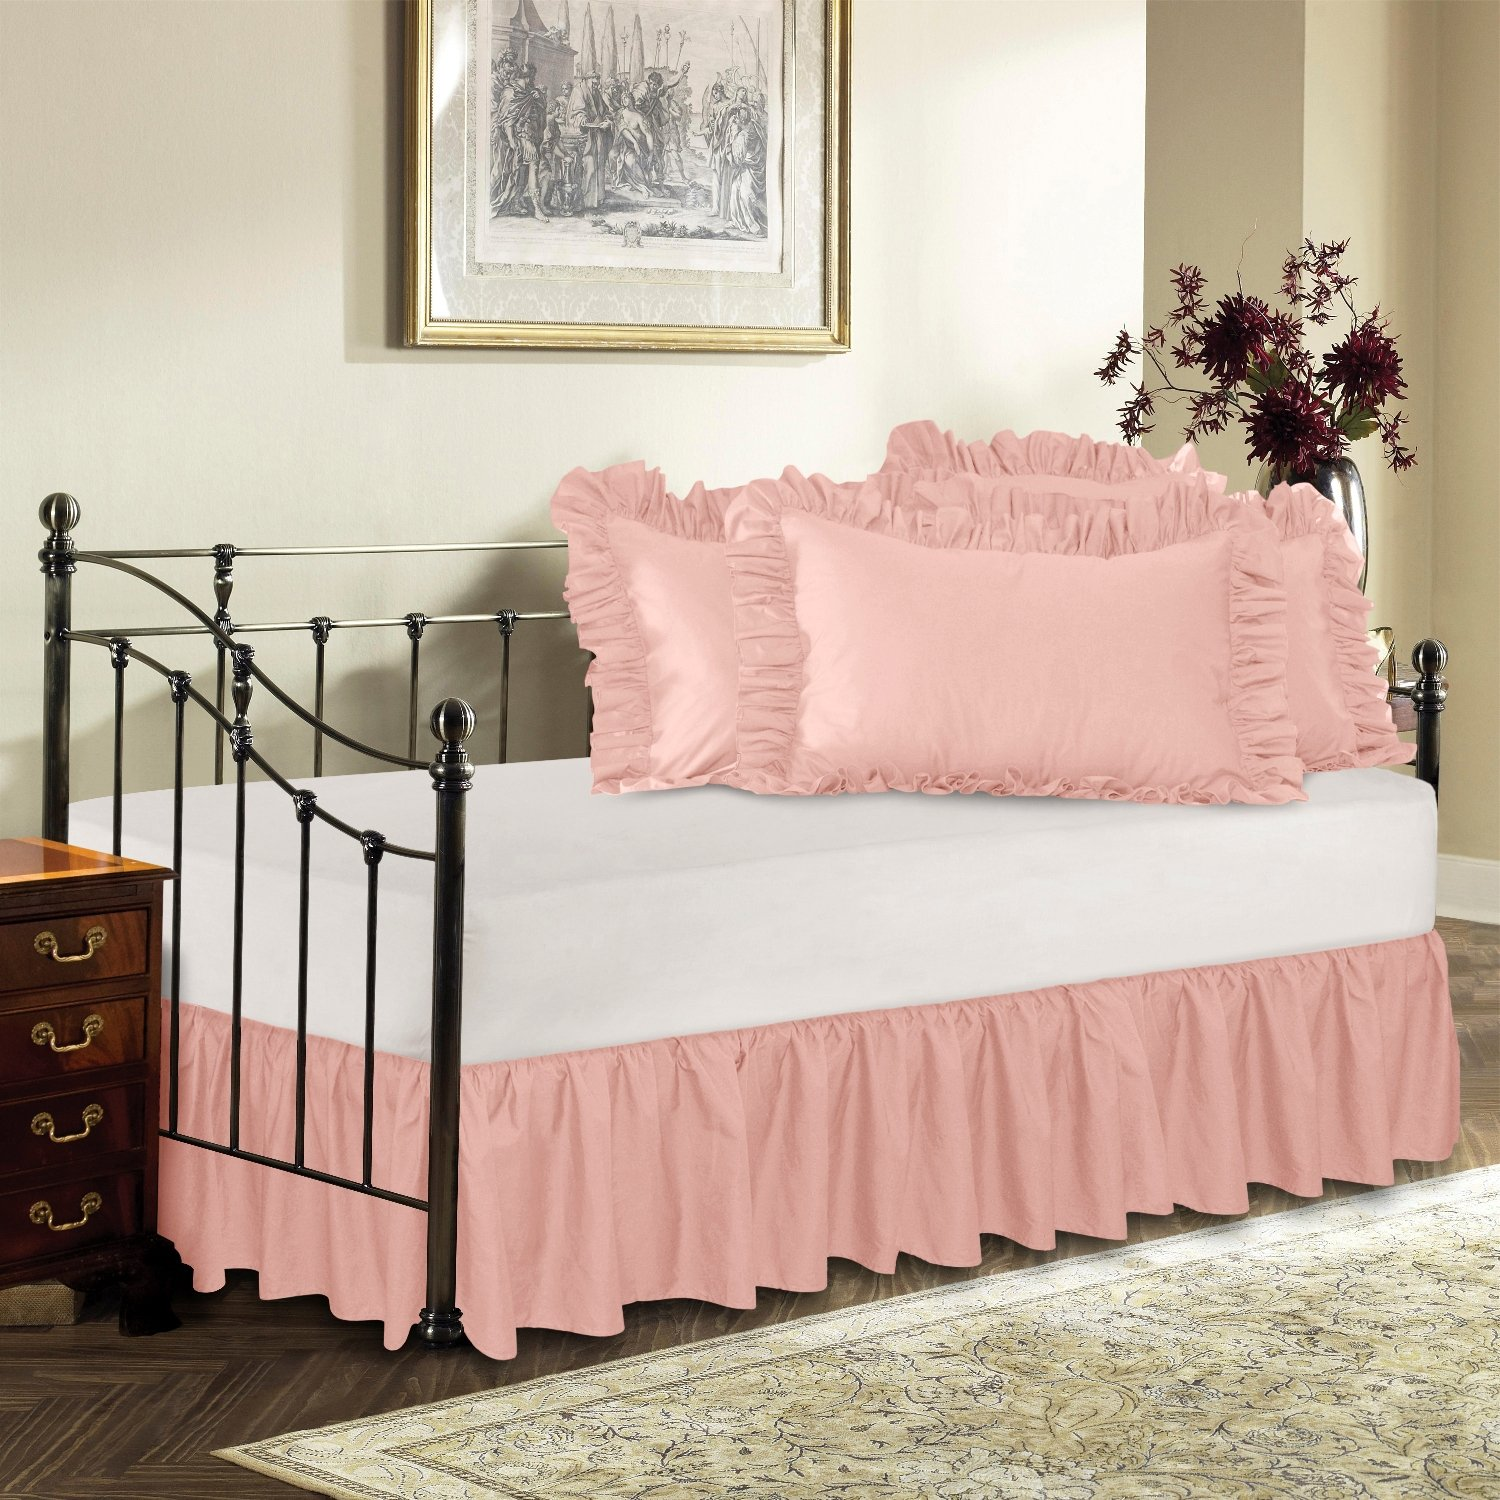 Amazon.com: Harmony Lane Day Bed Ruffled Bed Skirt, Sage, 18'' Drop Bedskirt  ( Available in 16 Colors): Home & Kitchen - Amazon.com: Harmony Lane Day Bed Ruffled Bed Skirt, Sage, 18